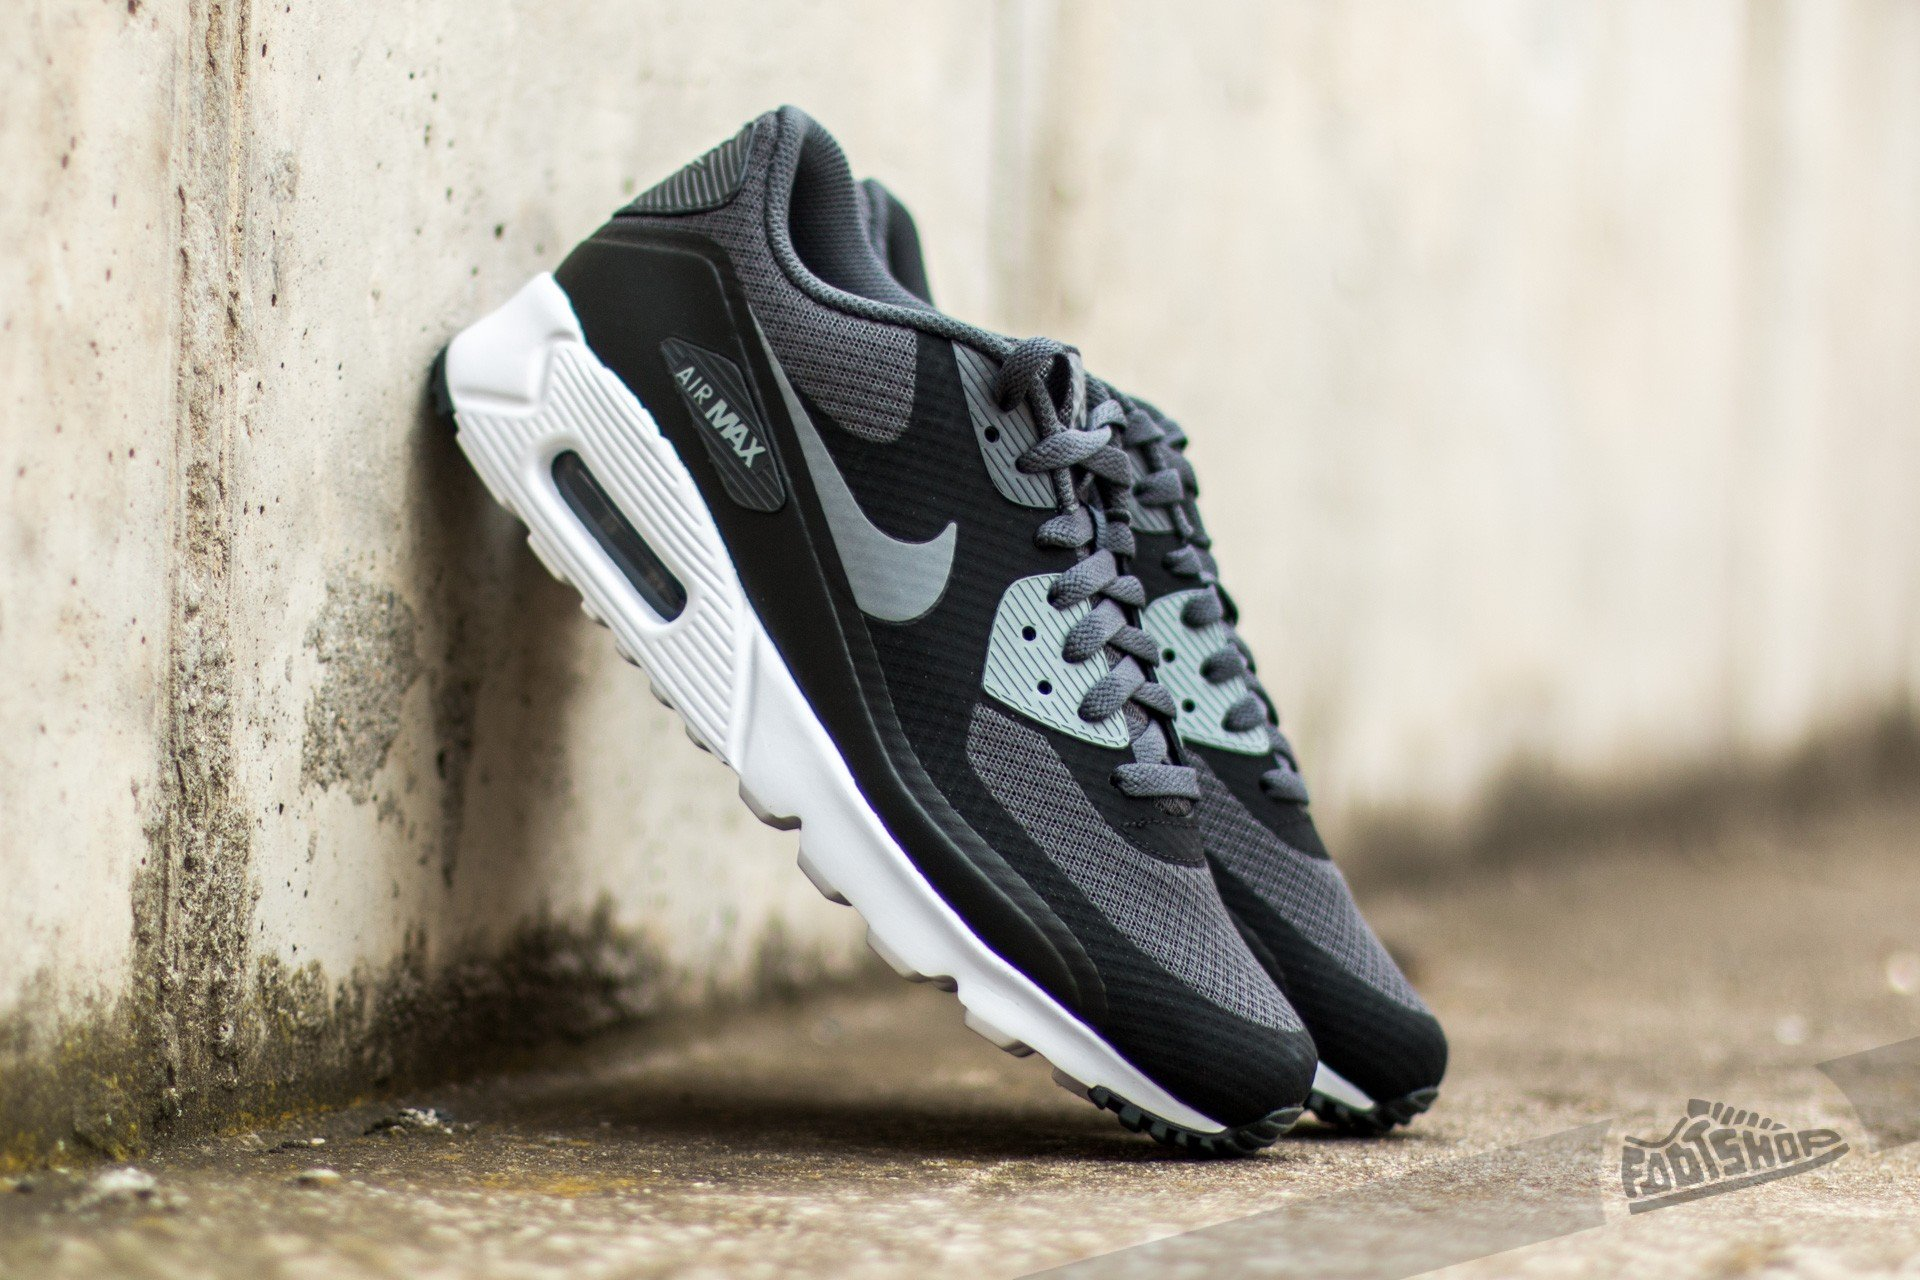 90c2eae0fa Nike Air Max 90 Ultra Essential Black/ Cool Grey-Anthracite-White ...